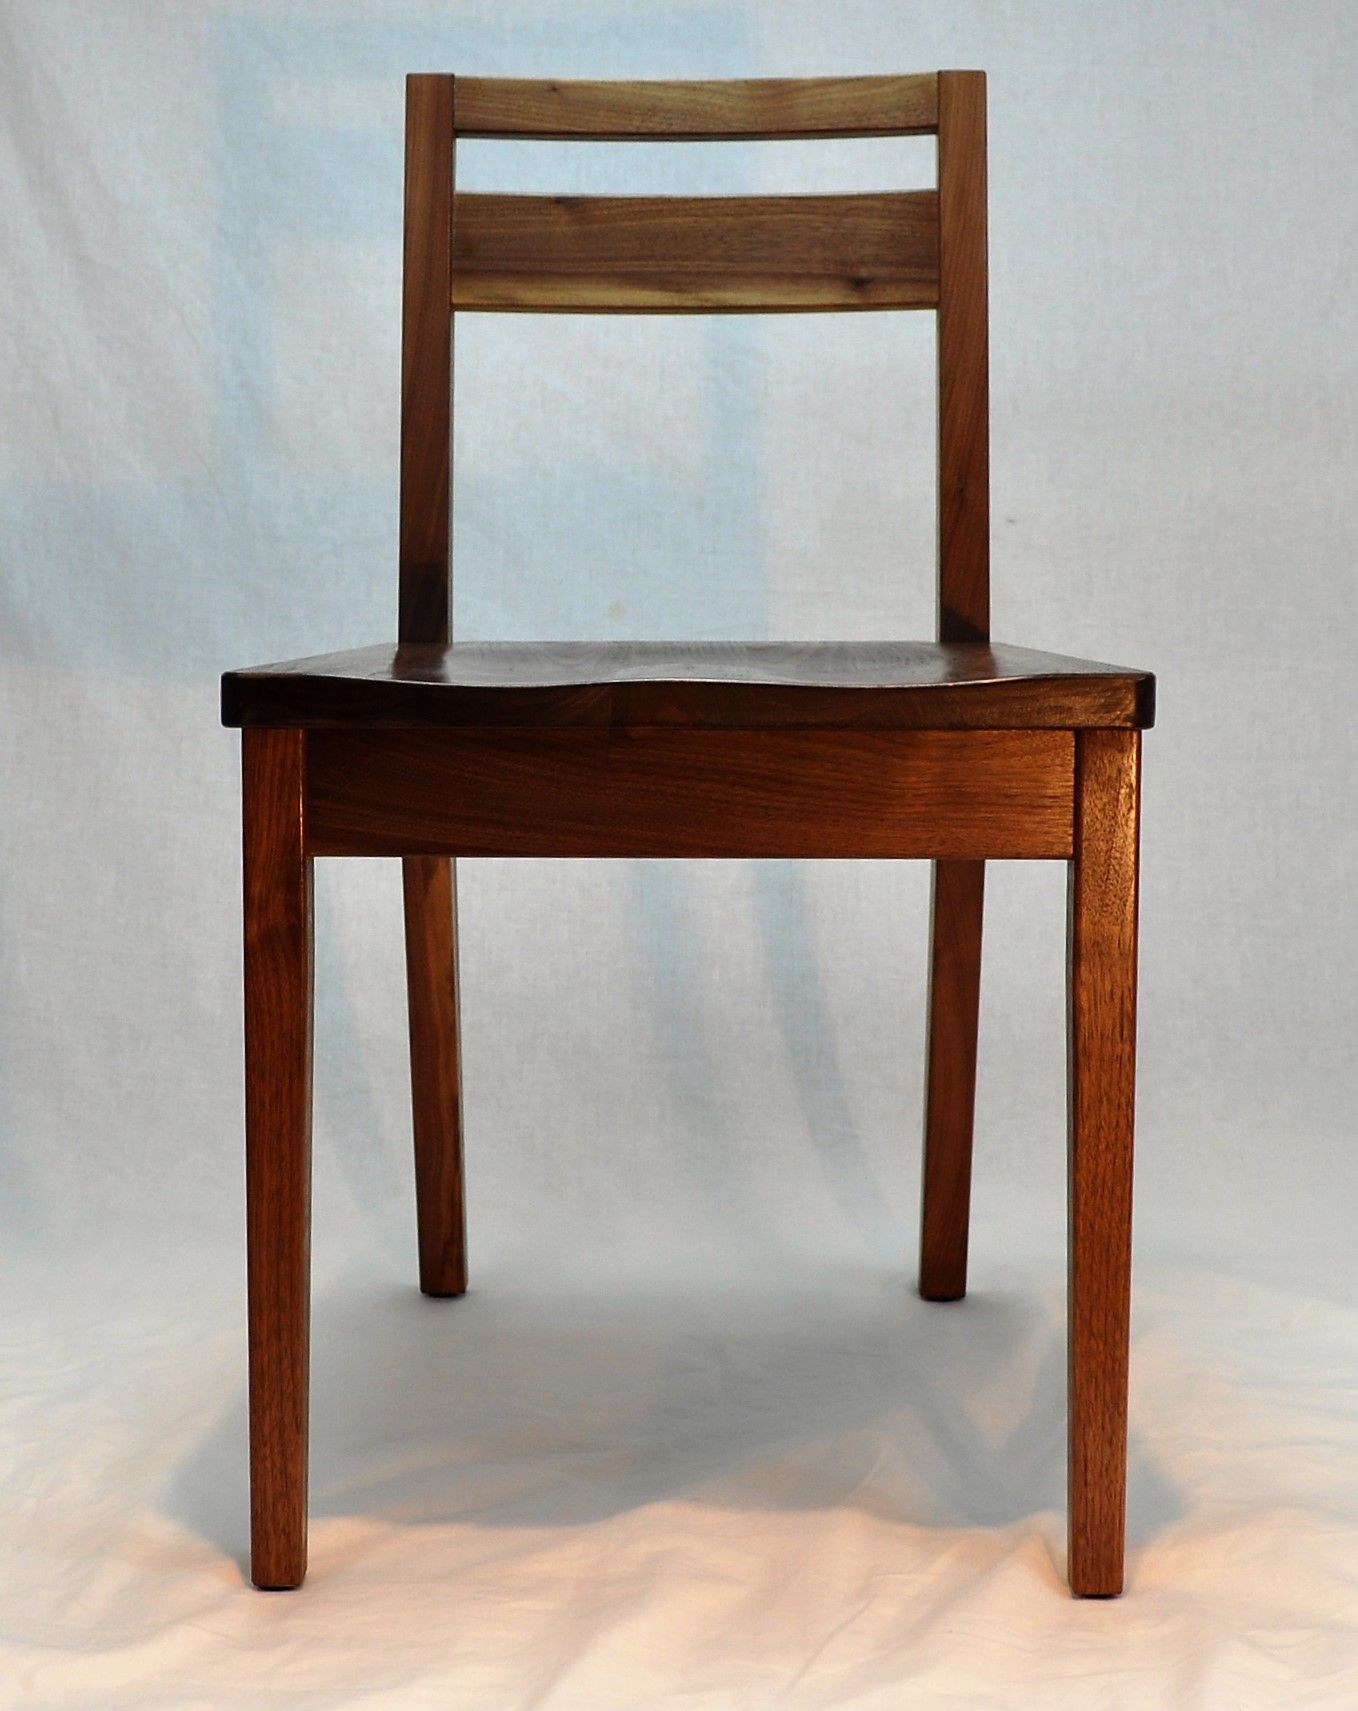 Hand Crafted Low Back Dining Chair by Glessboards